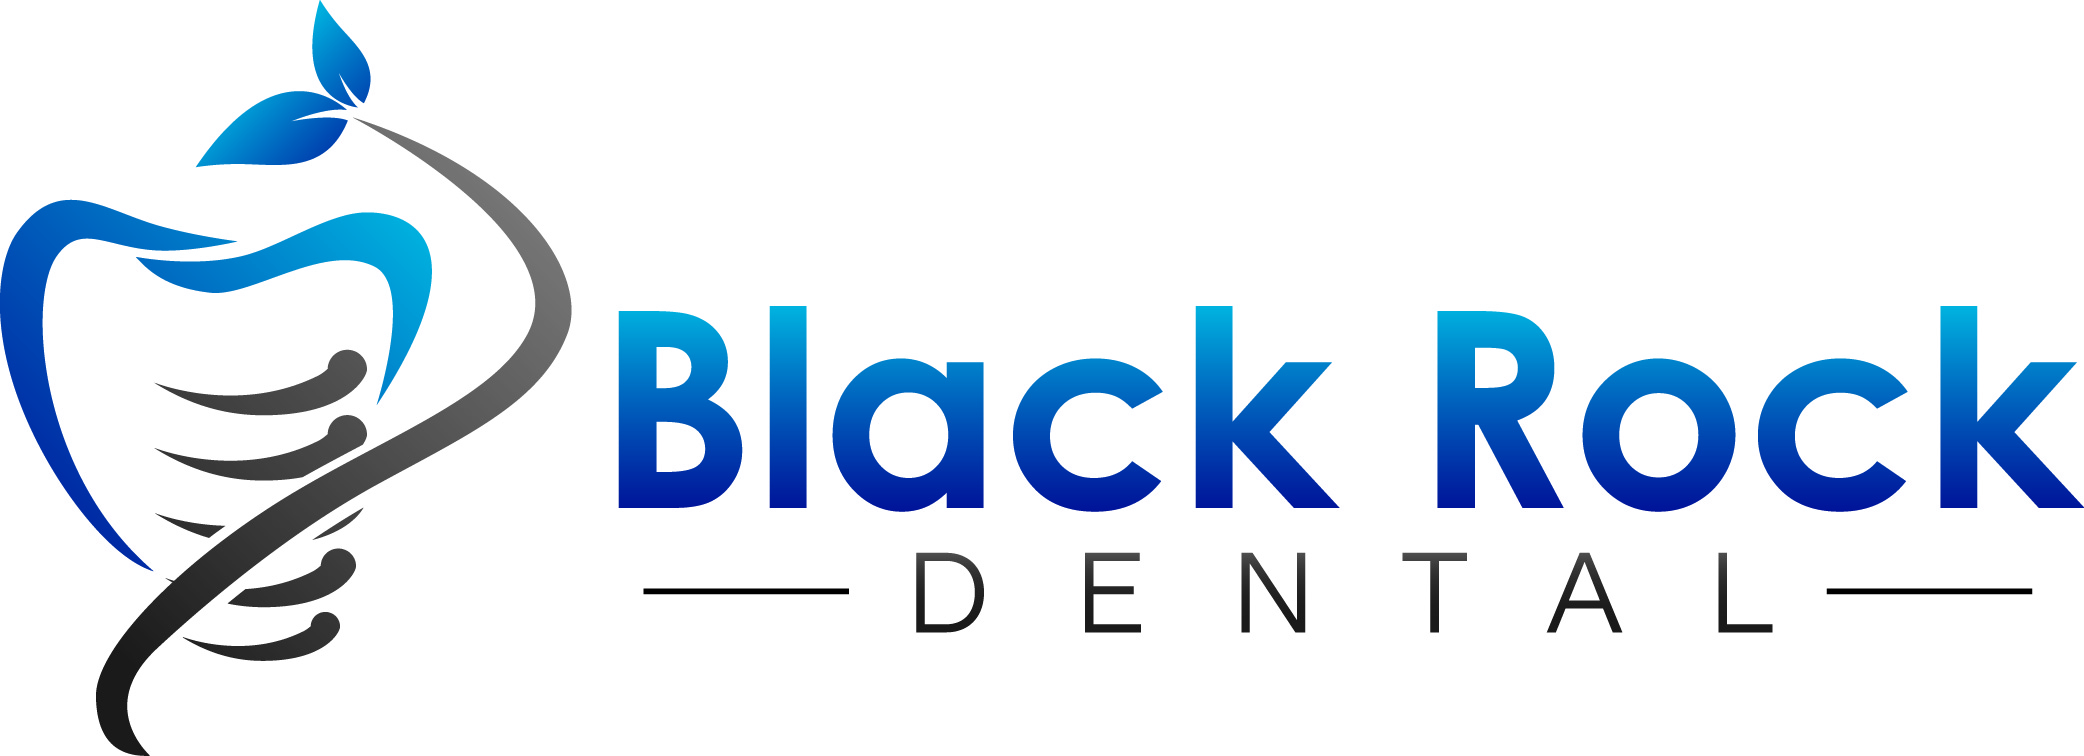 Black Rock Dental